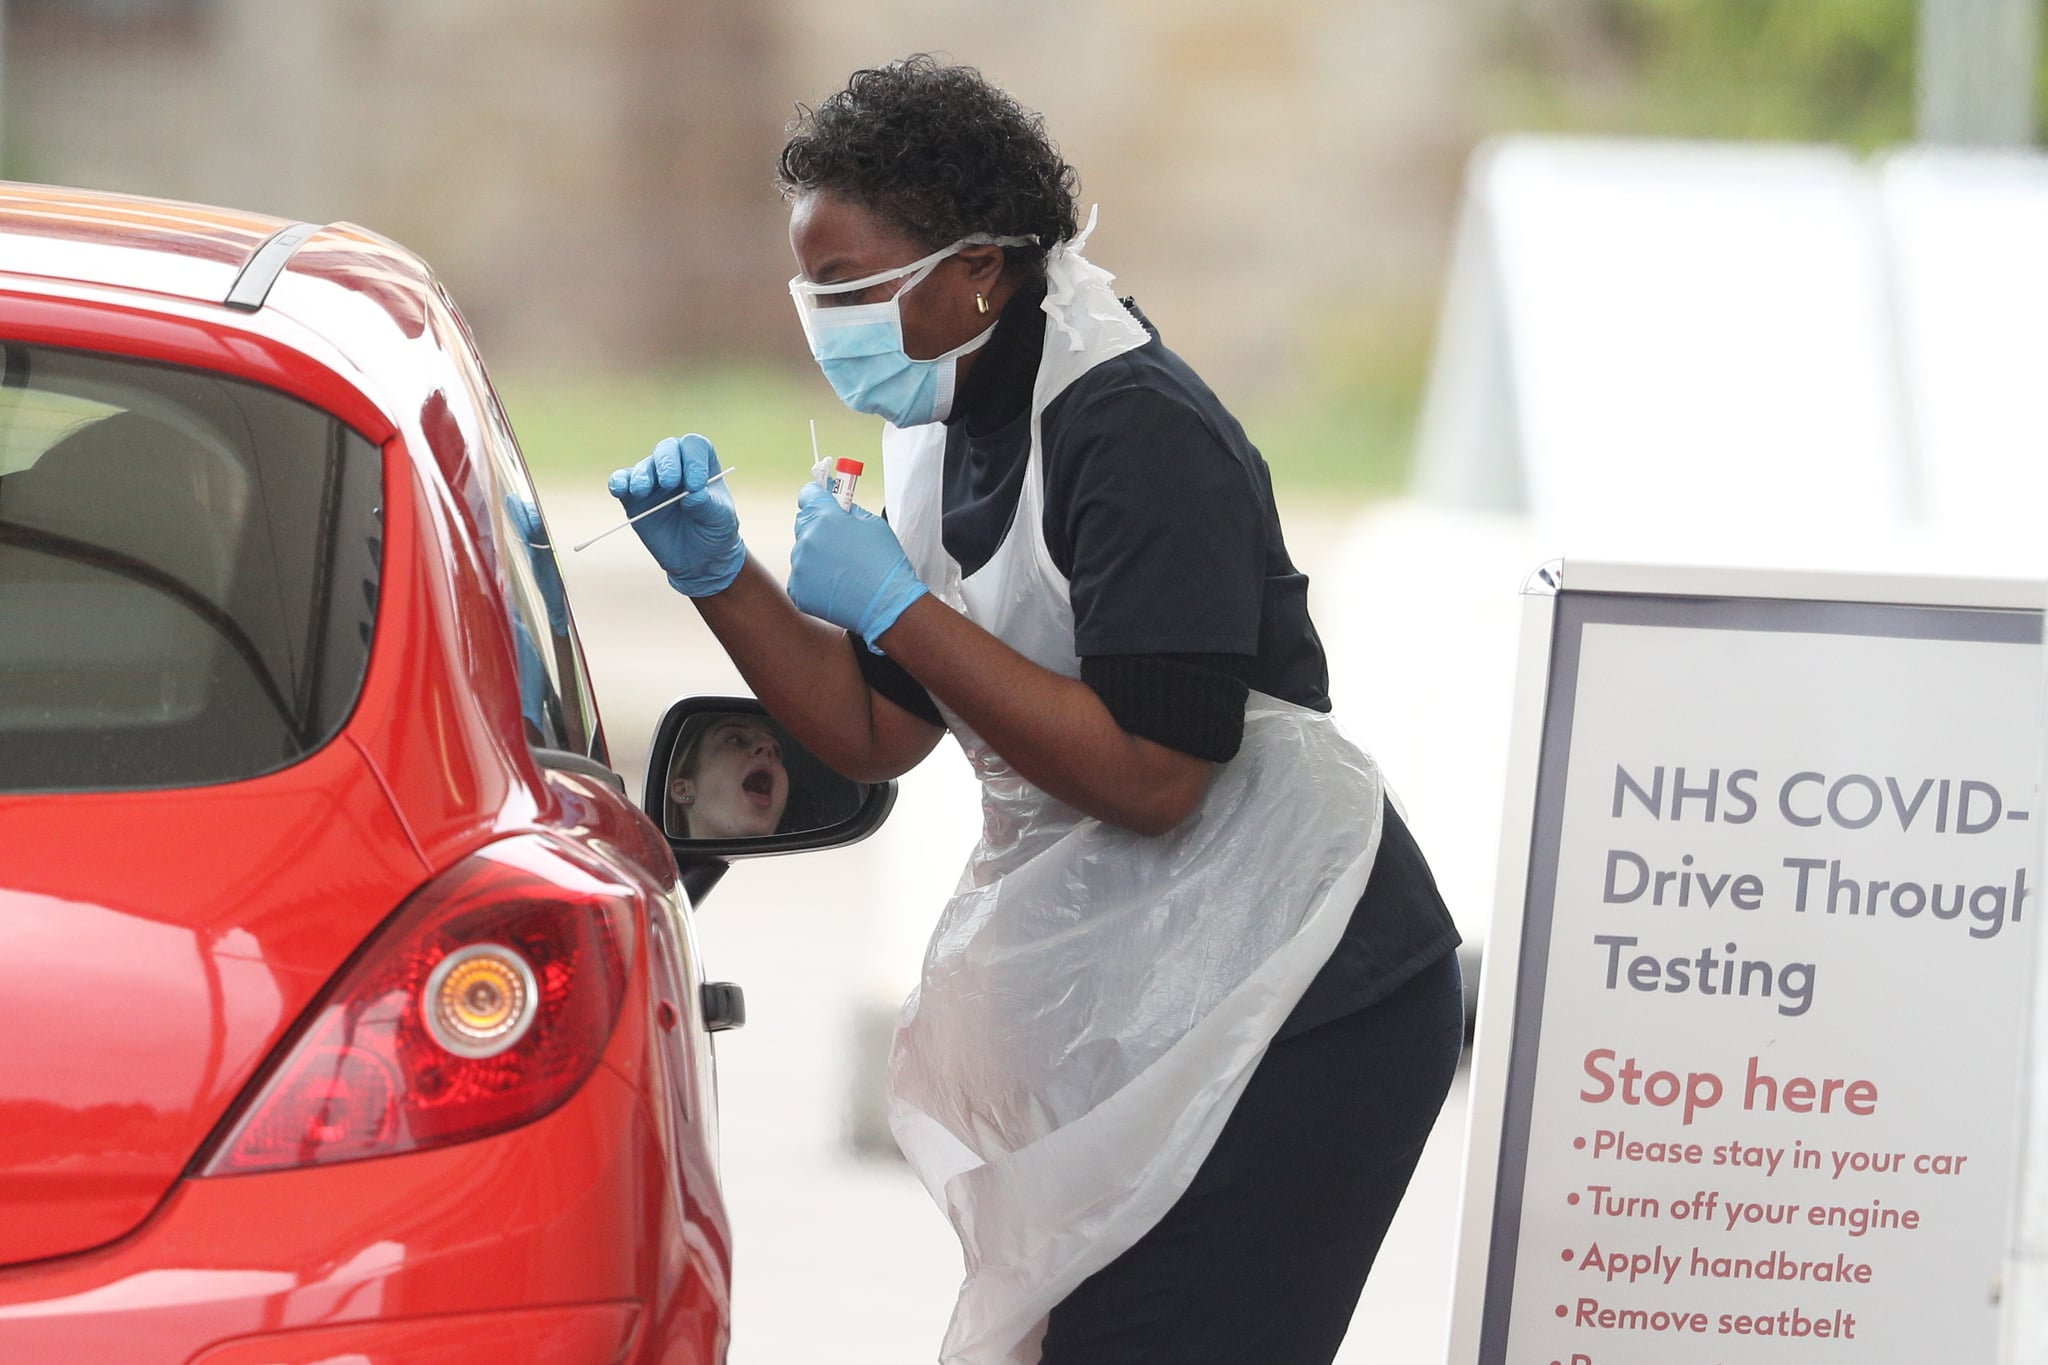 CHESSINGTON, UNITED KINGDOM - MARCH 30:  A nurse takes a swab at a Covid-19 Drive-Through testing station for NHS staff on March 30, 2020 in Chessington, United Kingdom. The Coronavirus (COVID-19) pandemic has spread to many countries across the world, claiming over 30,000 lives and infecting hundreds of thousands more. (Photo by Dan Kitwood/Getty Images)